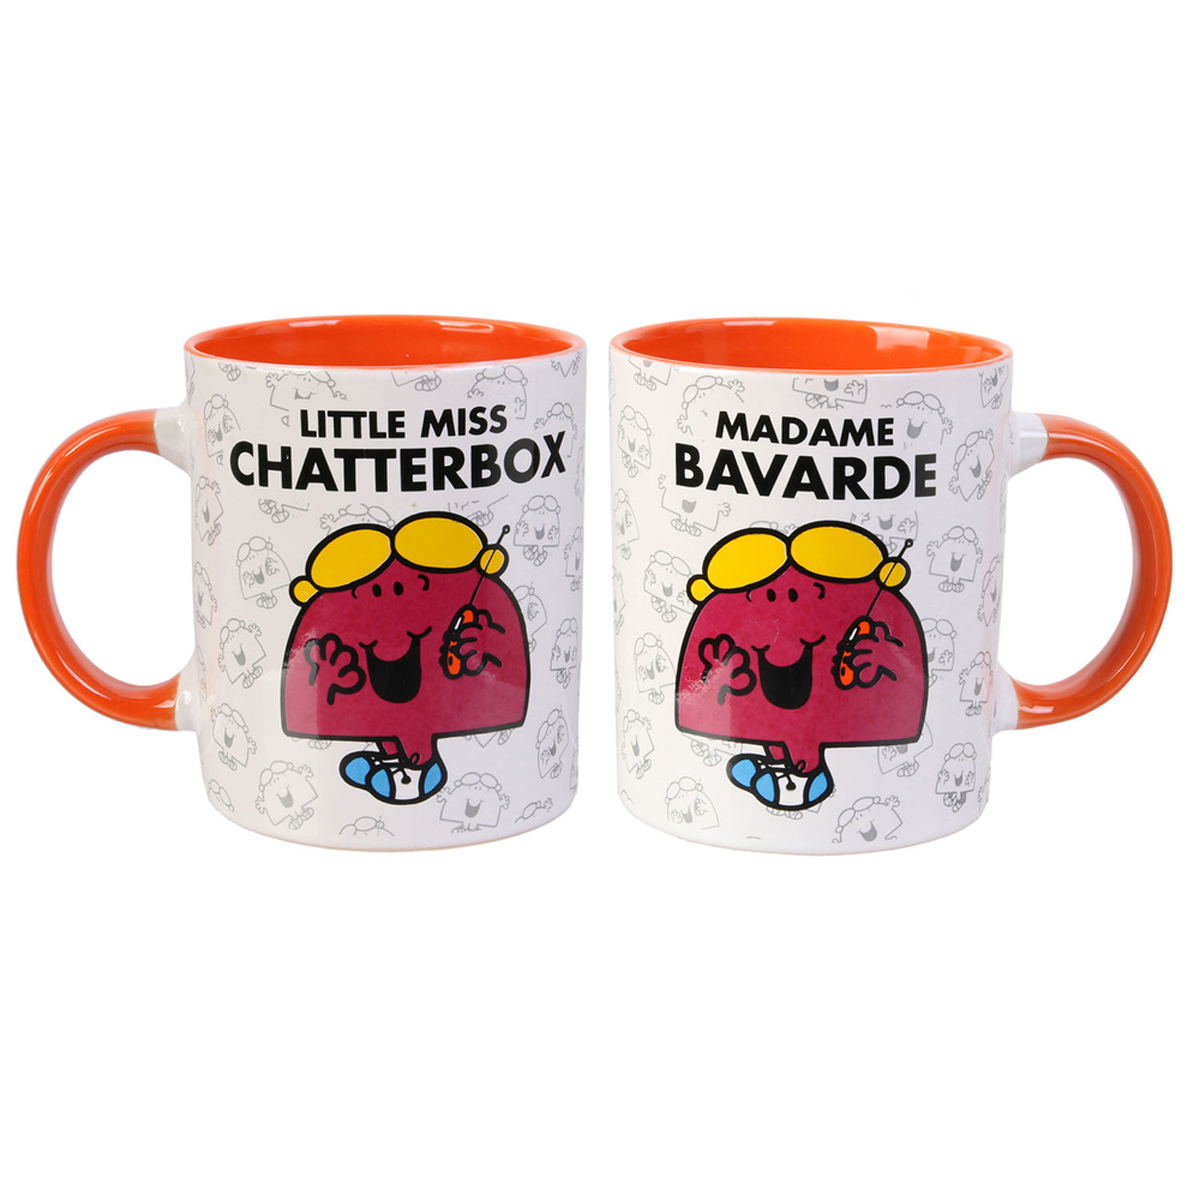 Mug céramique \'Monsieur Madame\' orange (Mme Bavarde - Little miss Chatterbox) - 95x80 mm - [Q8990]